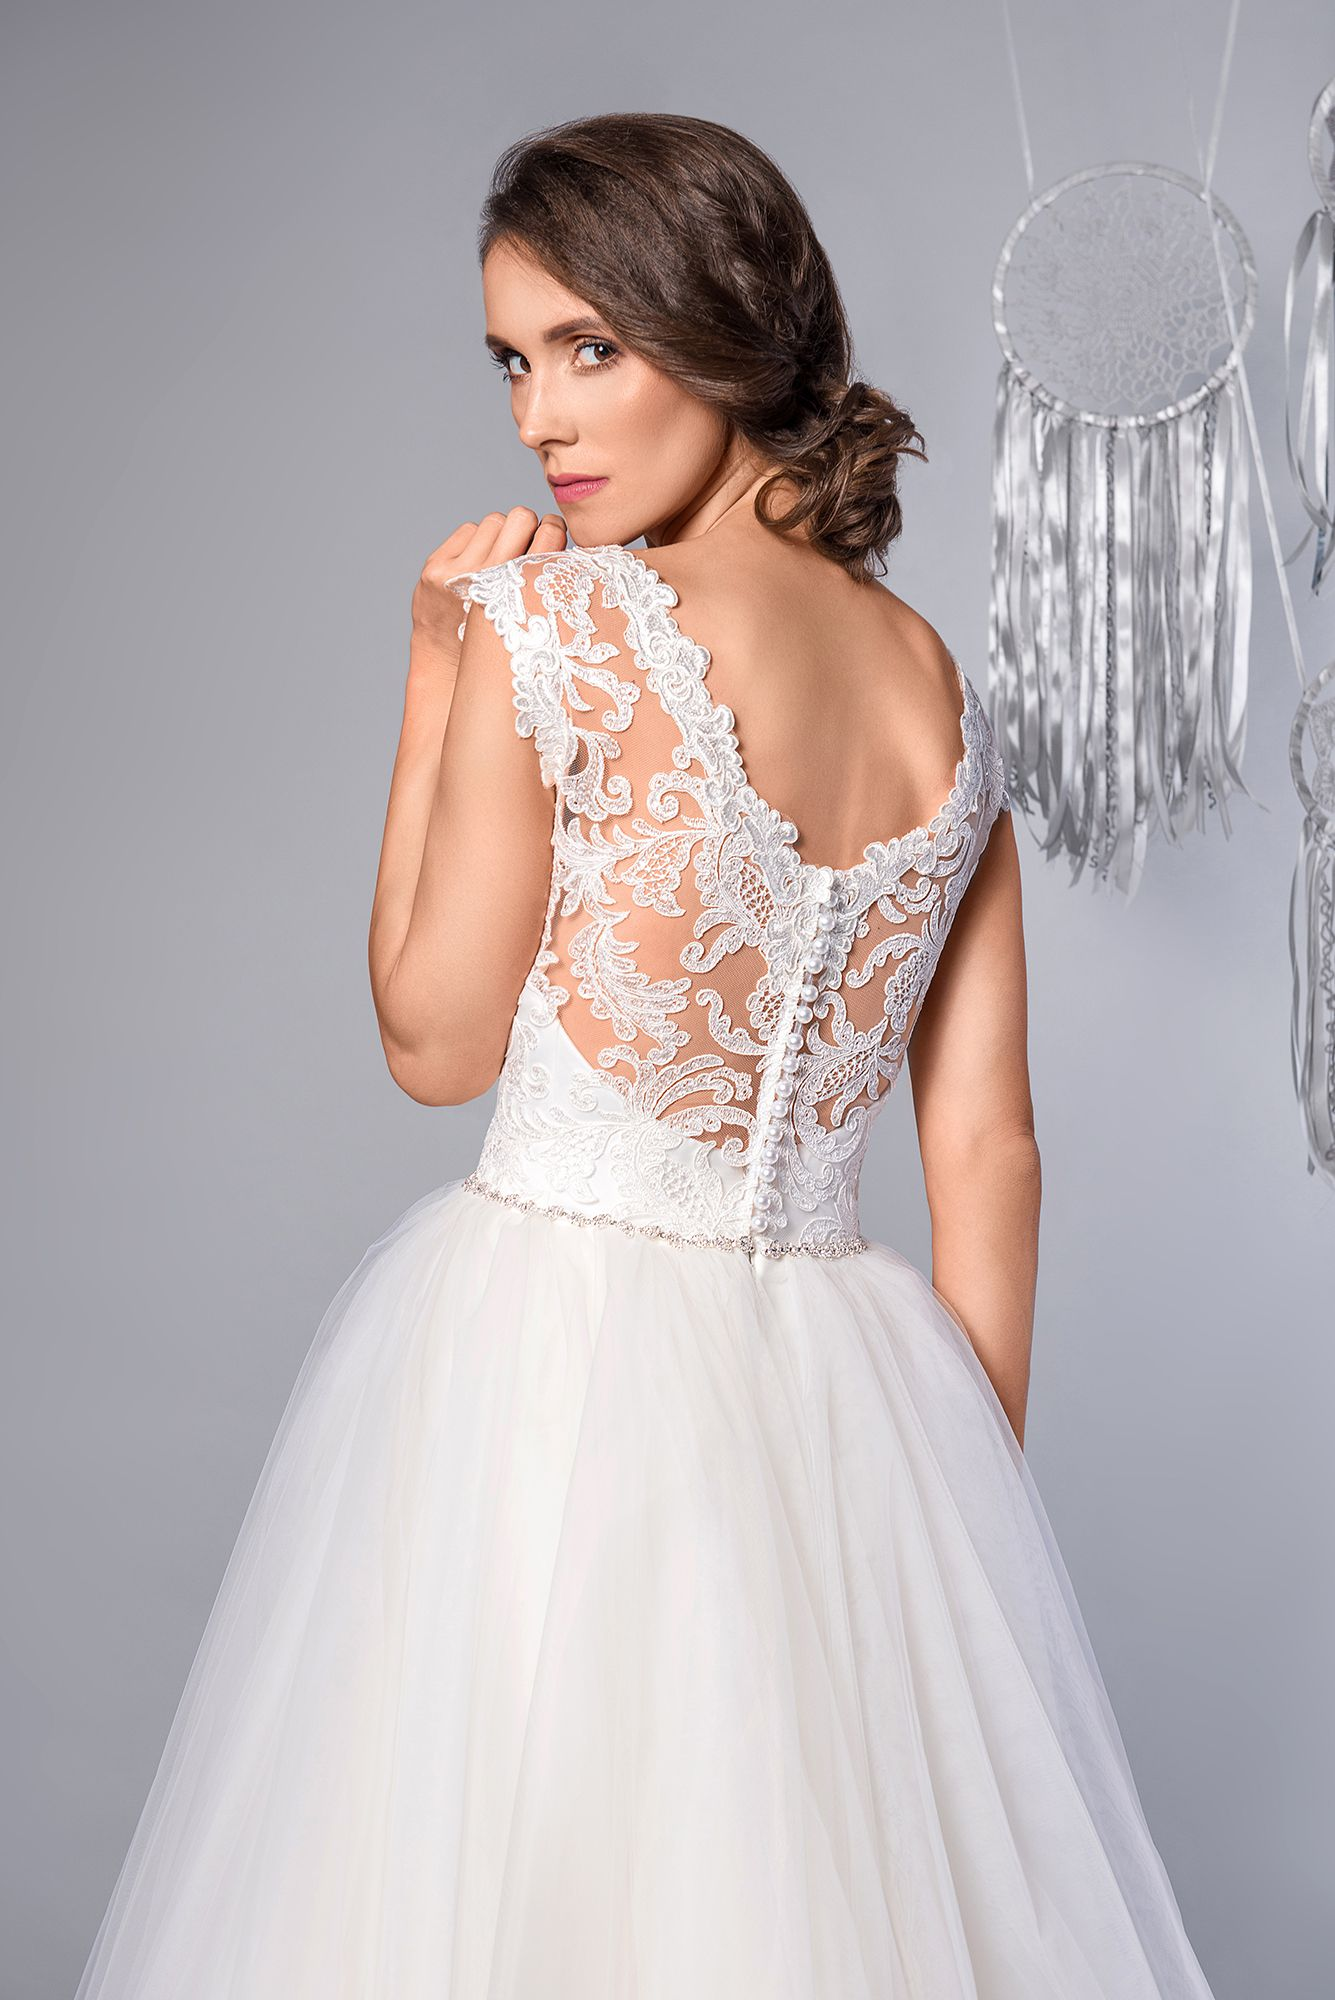 9b1537f0740f5 Candy - Suknia Ślubna Koronka Piękne Plecy. Wedding Dress Lace Beautiful  Back #sukniaślubna #